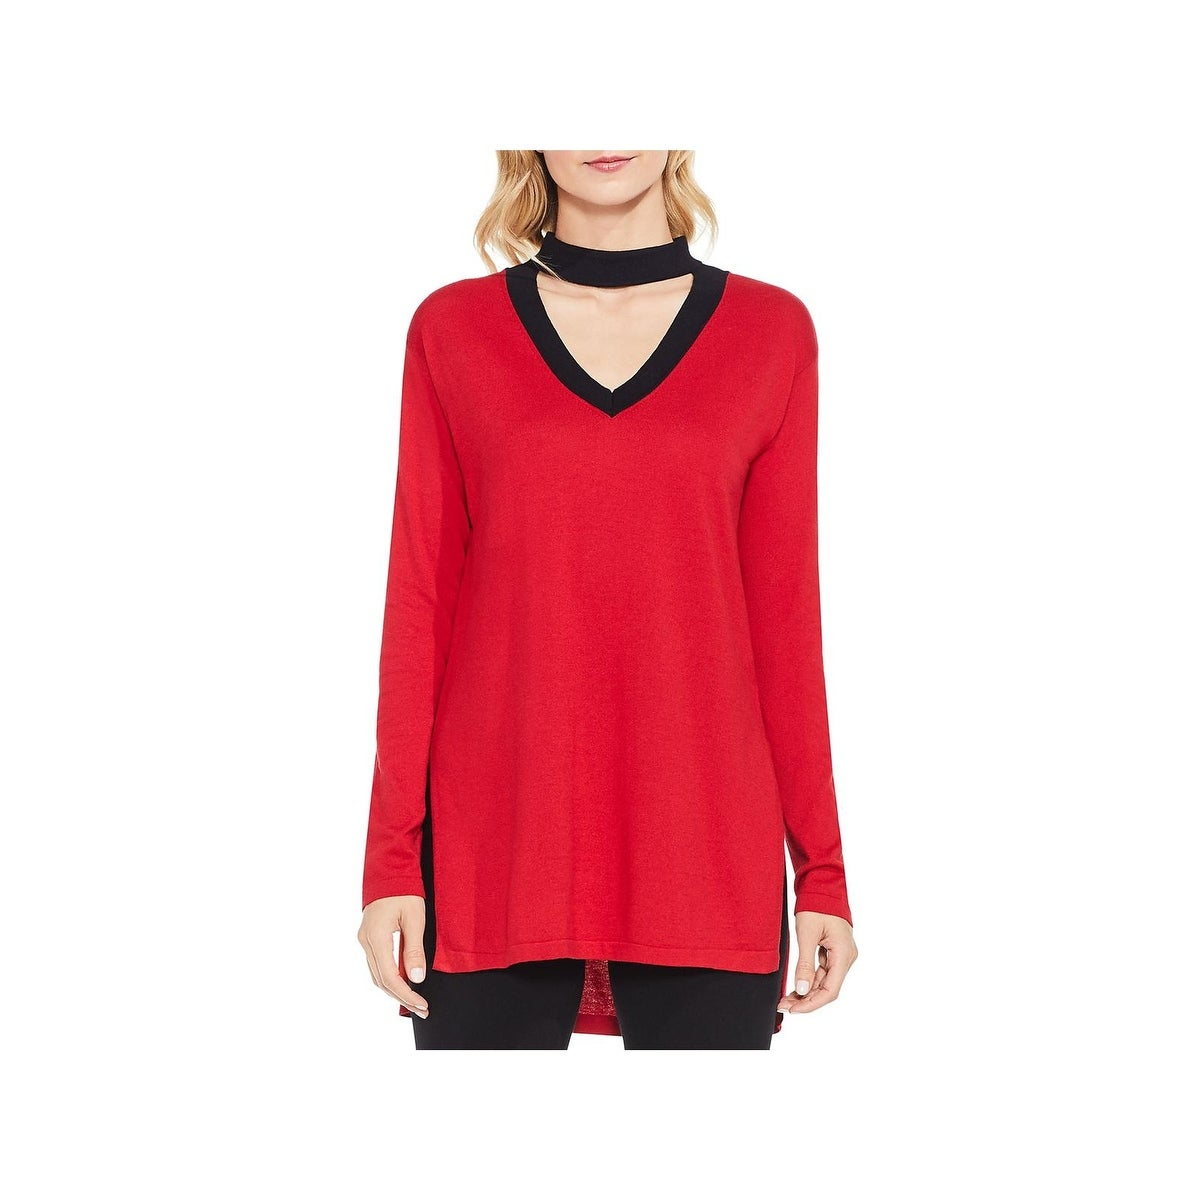 496a2568e Vince Camuto Women s Sweaters